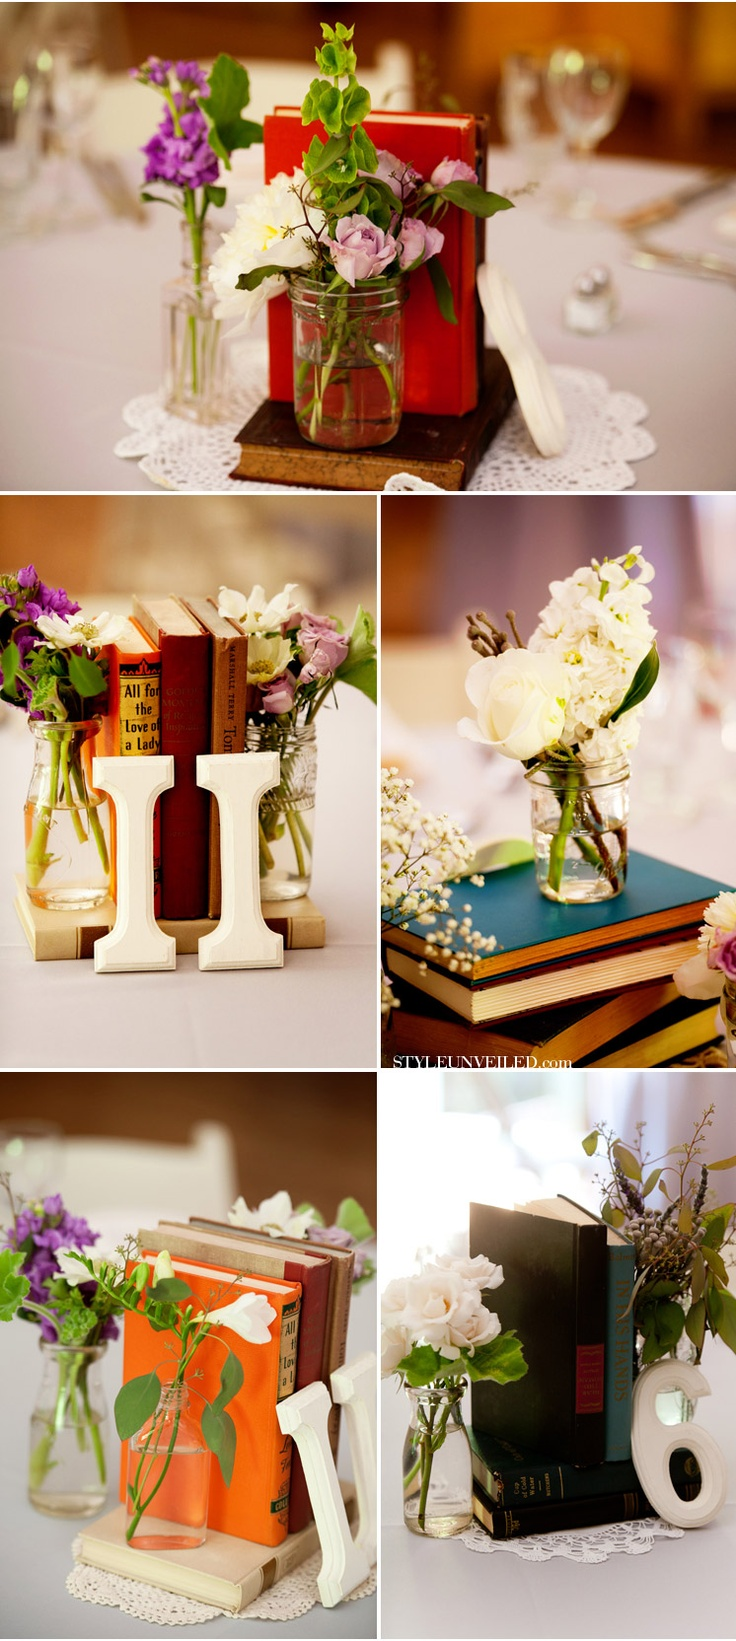 Using favorite books as centerpieces new home ideas